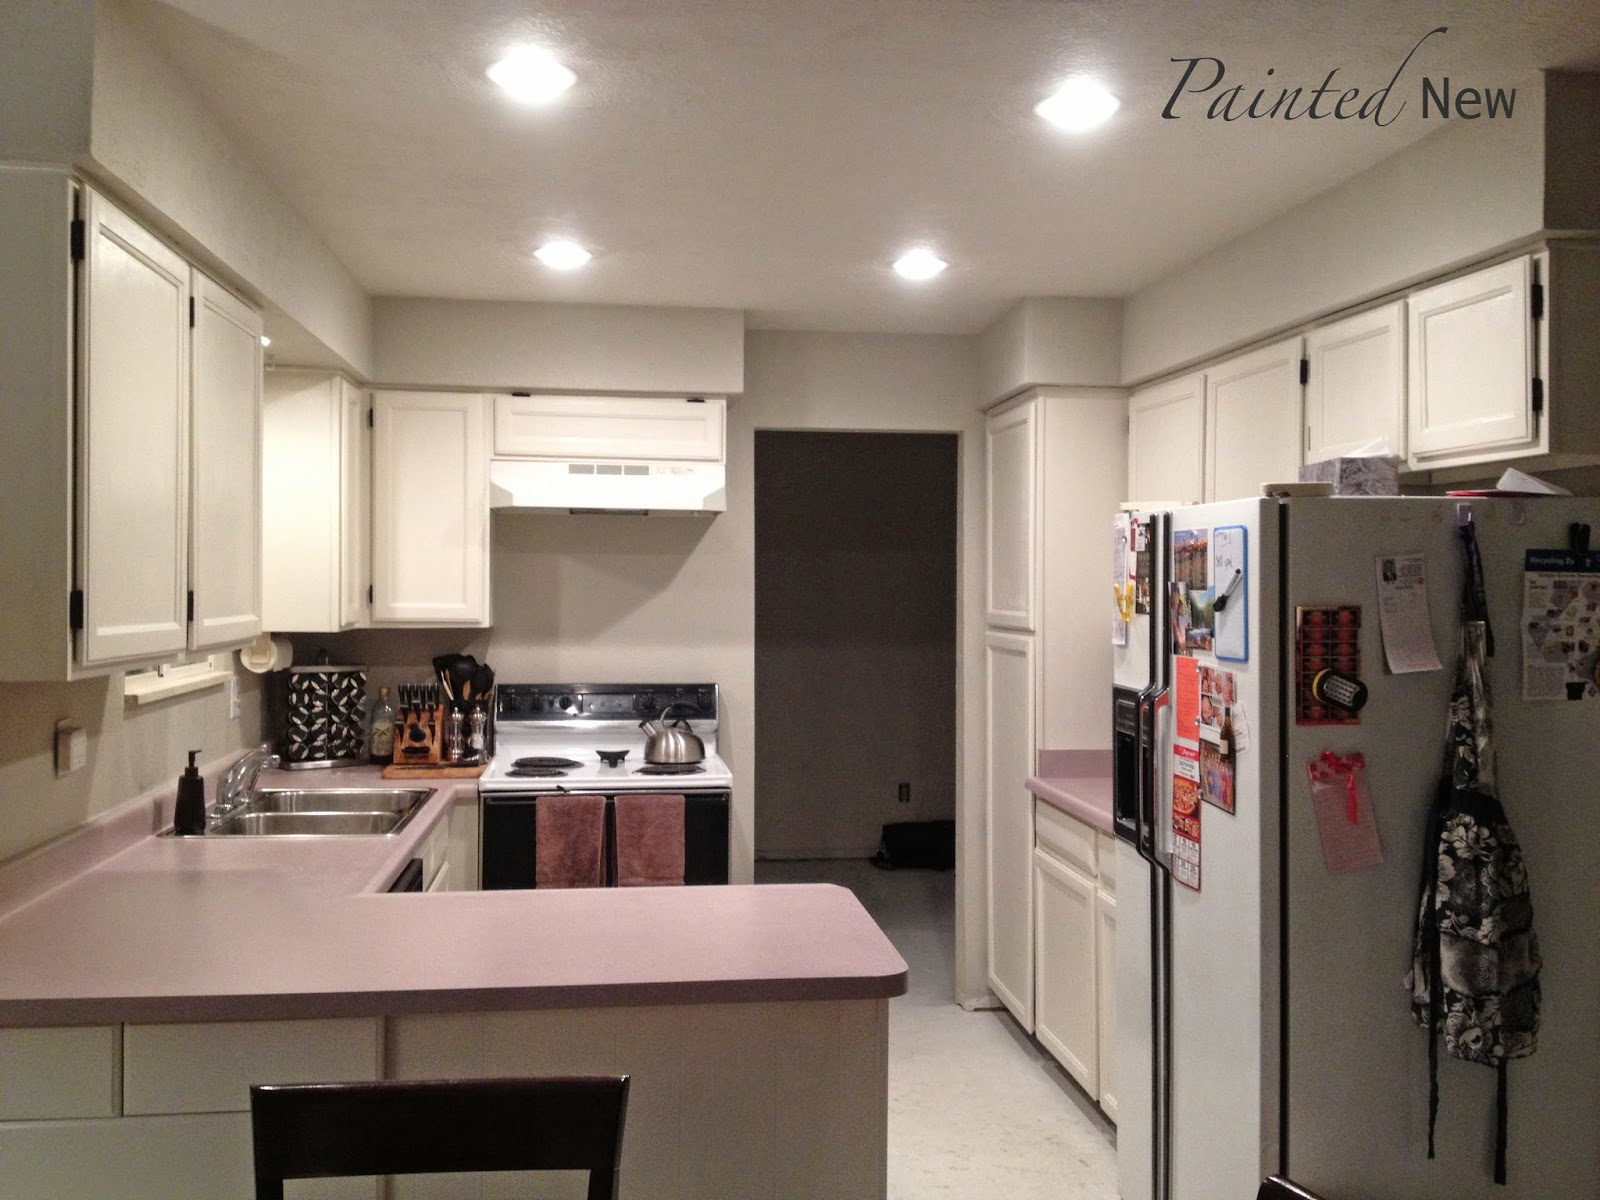 Painted New: $120 Kitchen Cabinet Makeover on ideas for living room makeovers, ideas for mirror makeovers, ideas for fireplace makeovers, ideas for kitchen countertops, ideas small kitchen makeovers before and after, small galley kitchen makeovers, ideas for lamp makeovers, kitchen counter makeovers, ideas for bedroom makeovers,